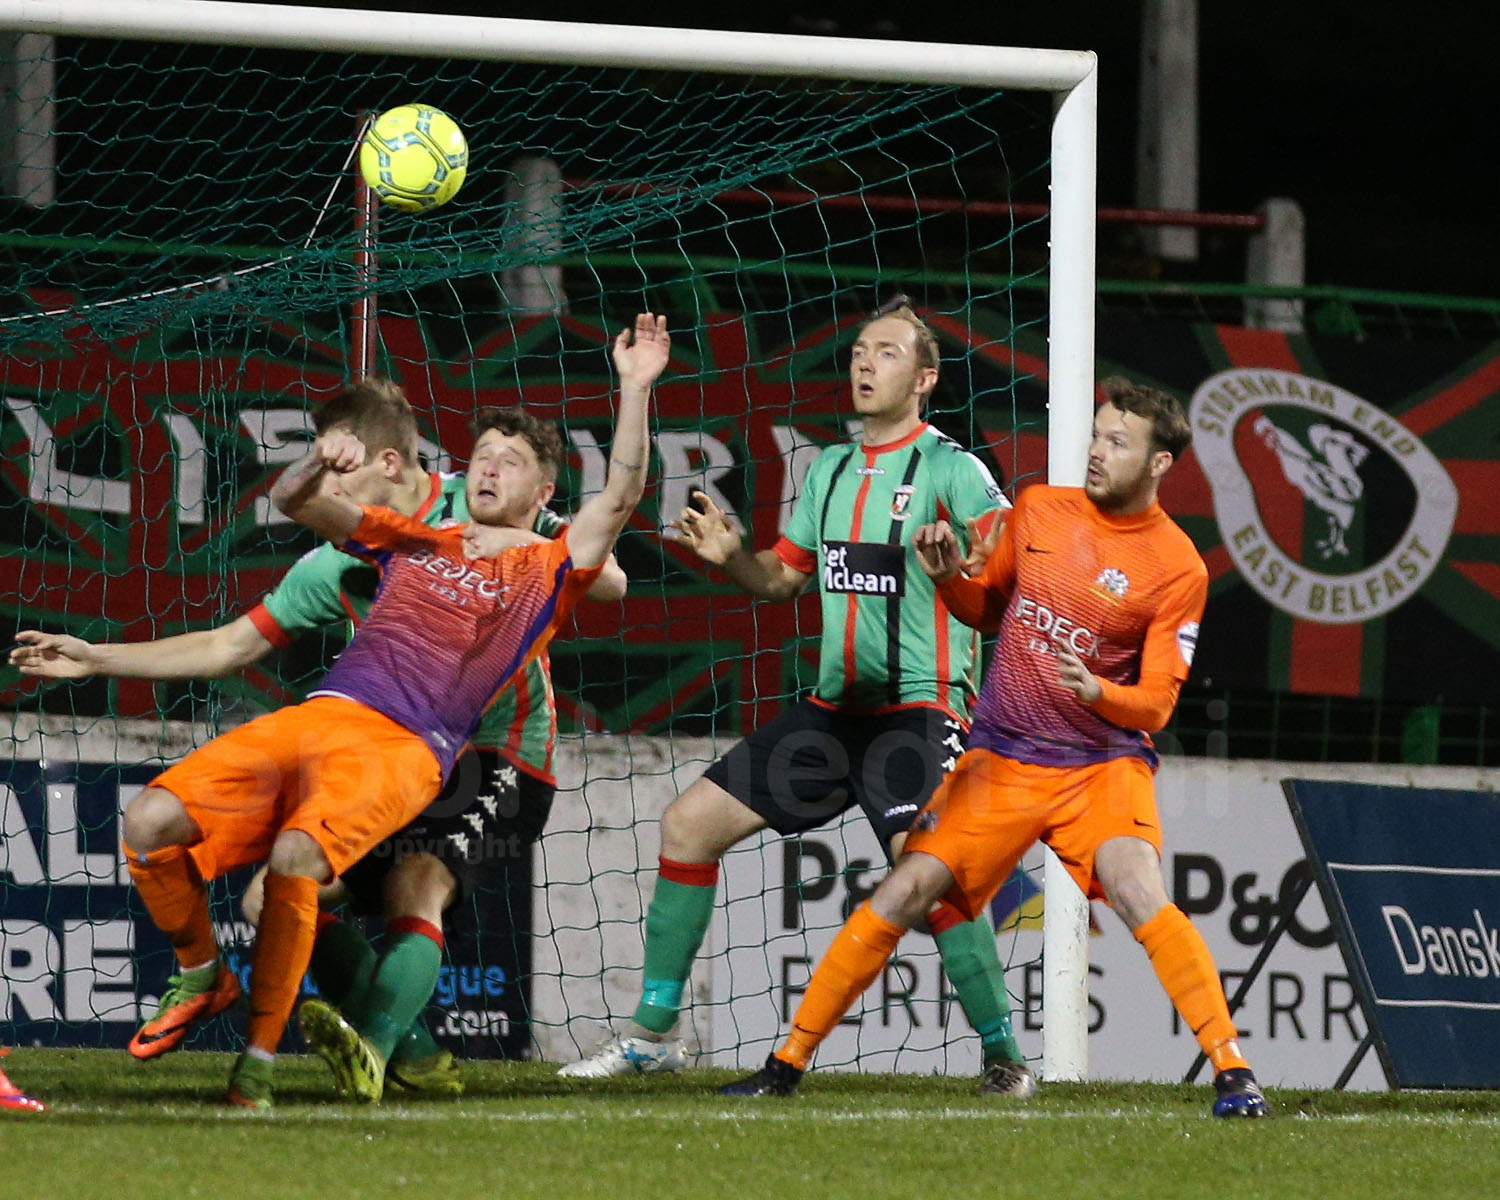 Sammy's Penalty Double Helps Sink Glens